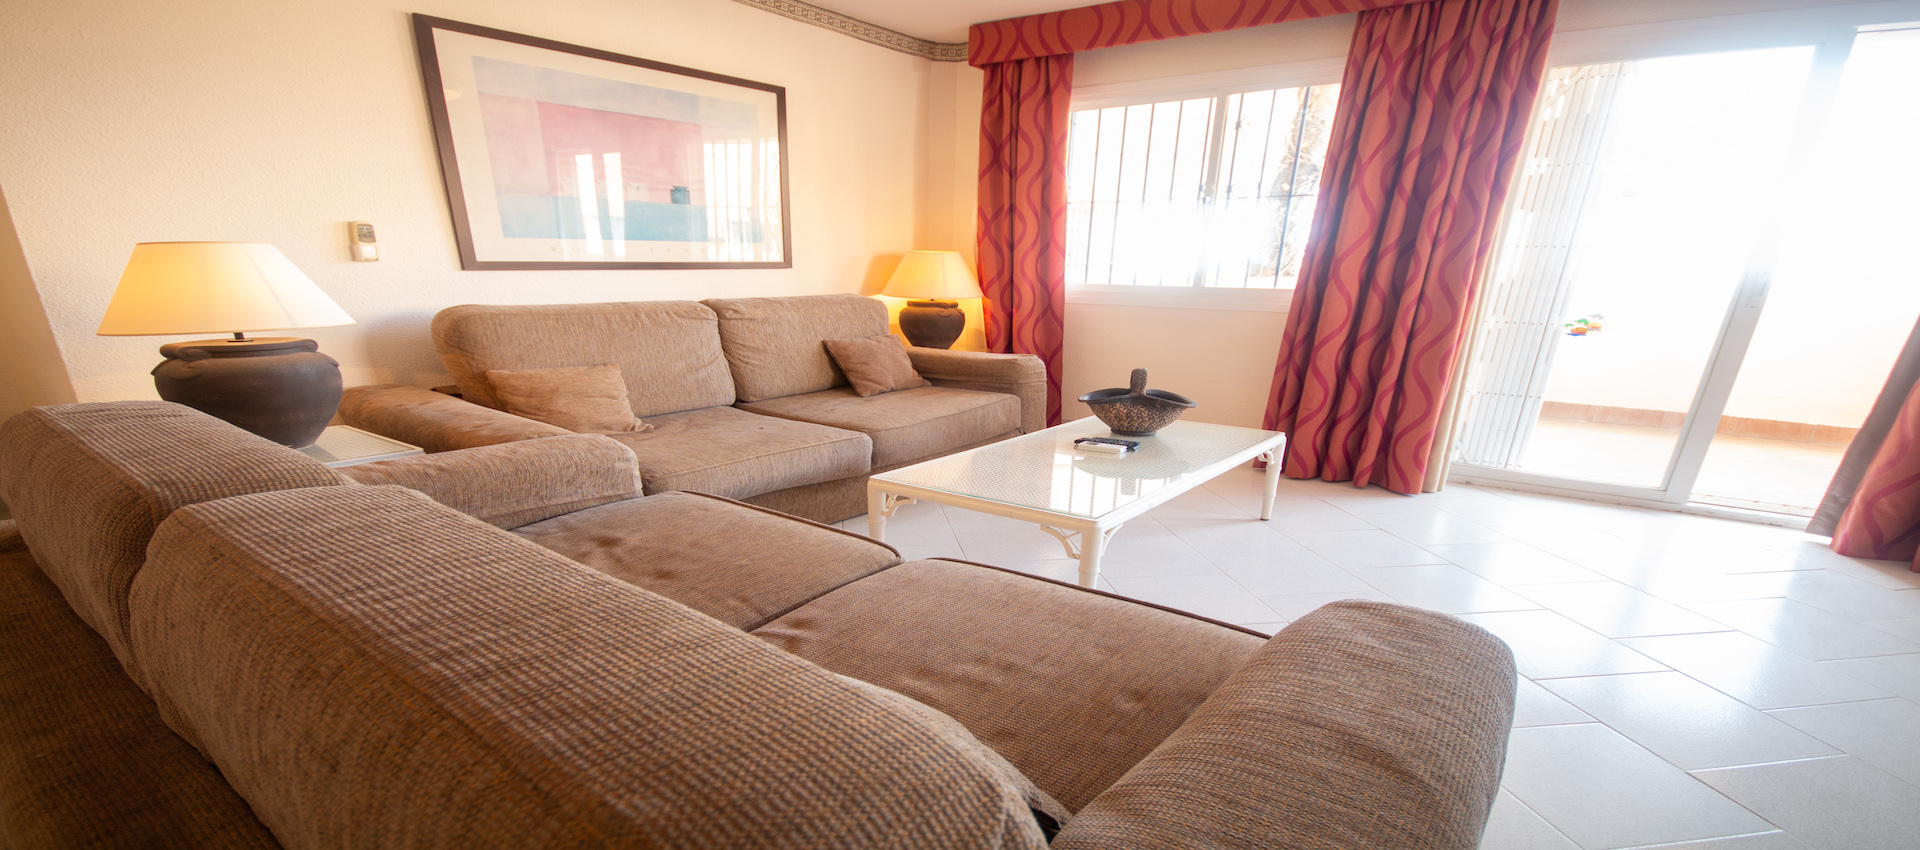 Two Bedroom Apartment For Long Term Rent In Riviera Del Sol- NOW RENTED